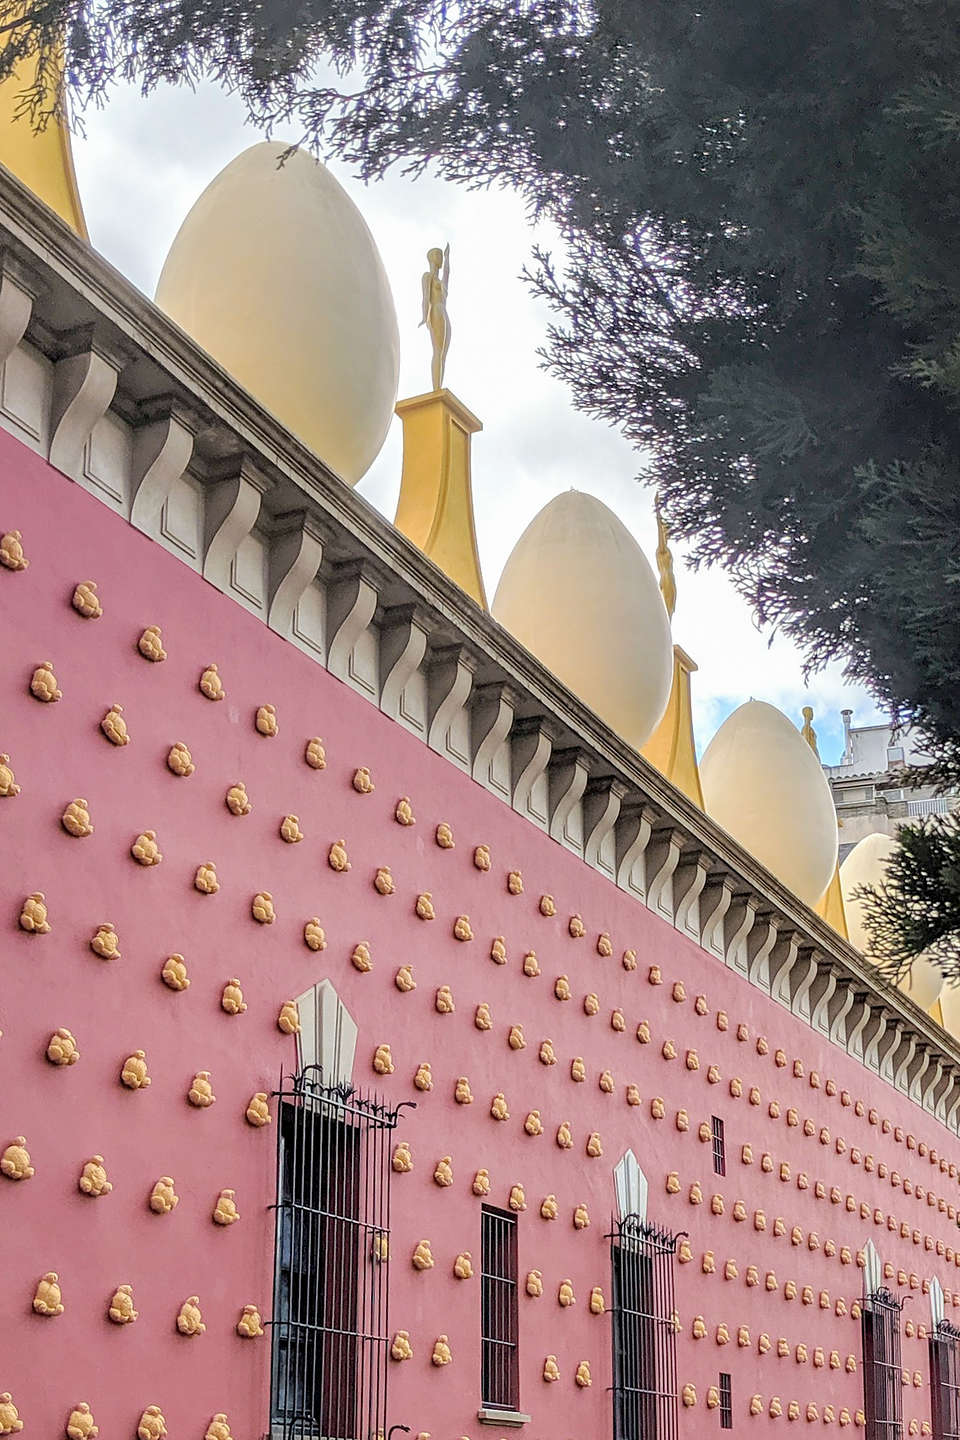 Exterior of the Salvador Dali Museum studded with plaster-covered croissants, and a roof topped with giant eggs and Oscars